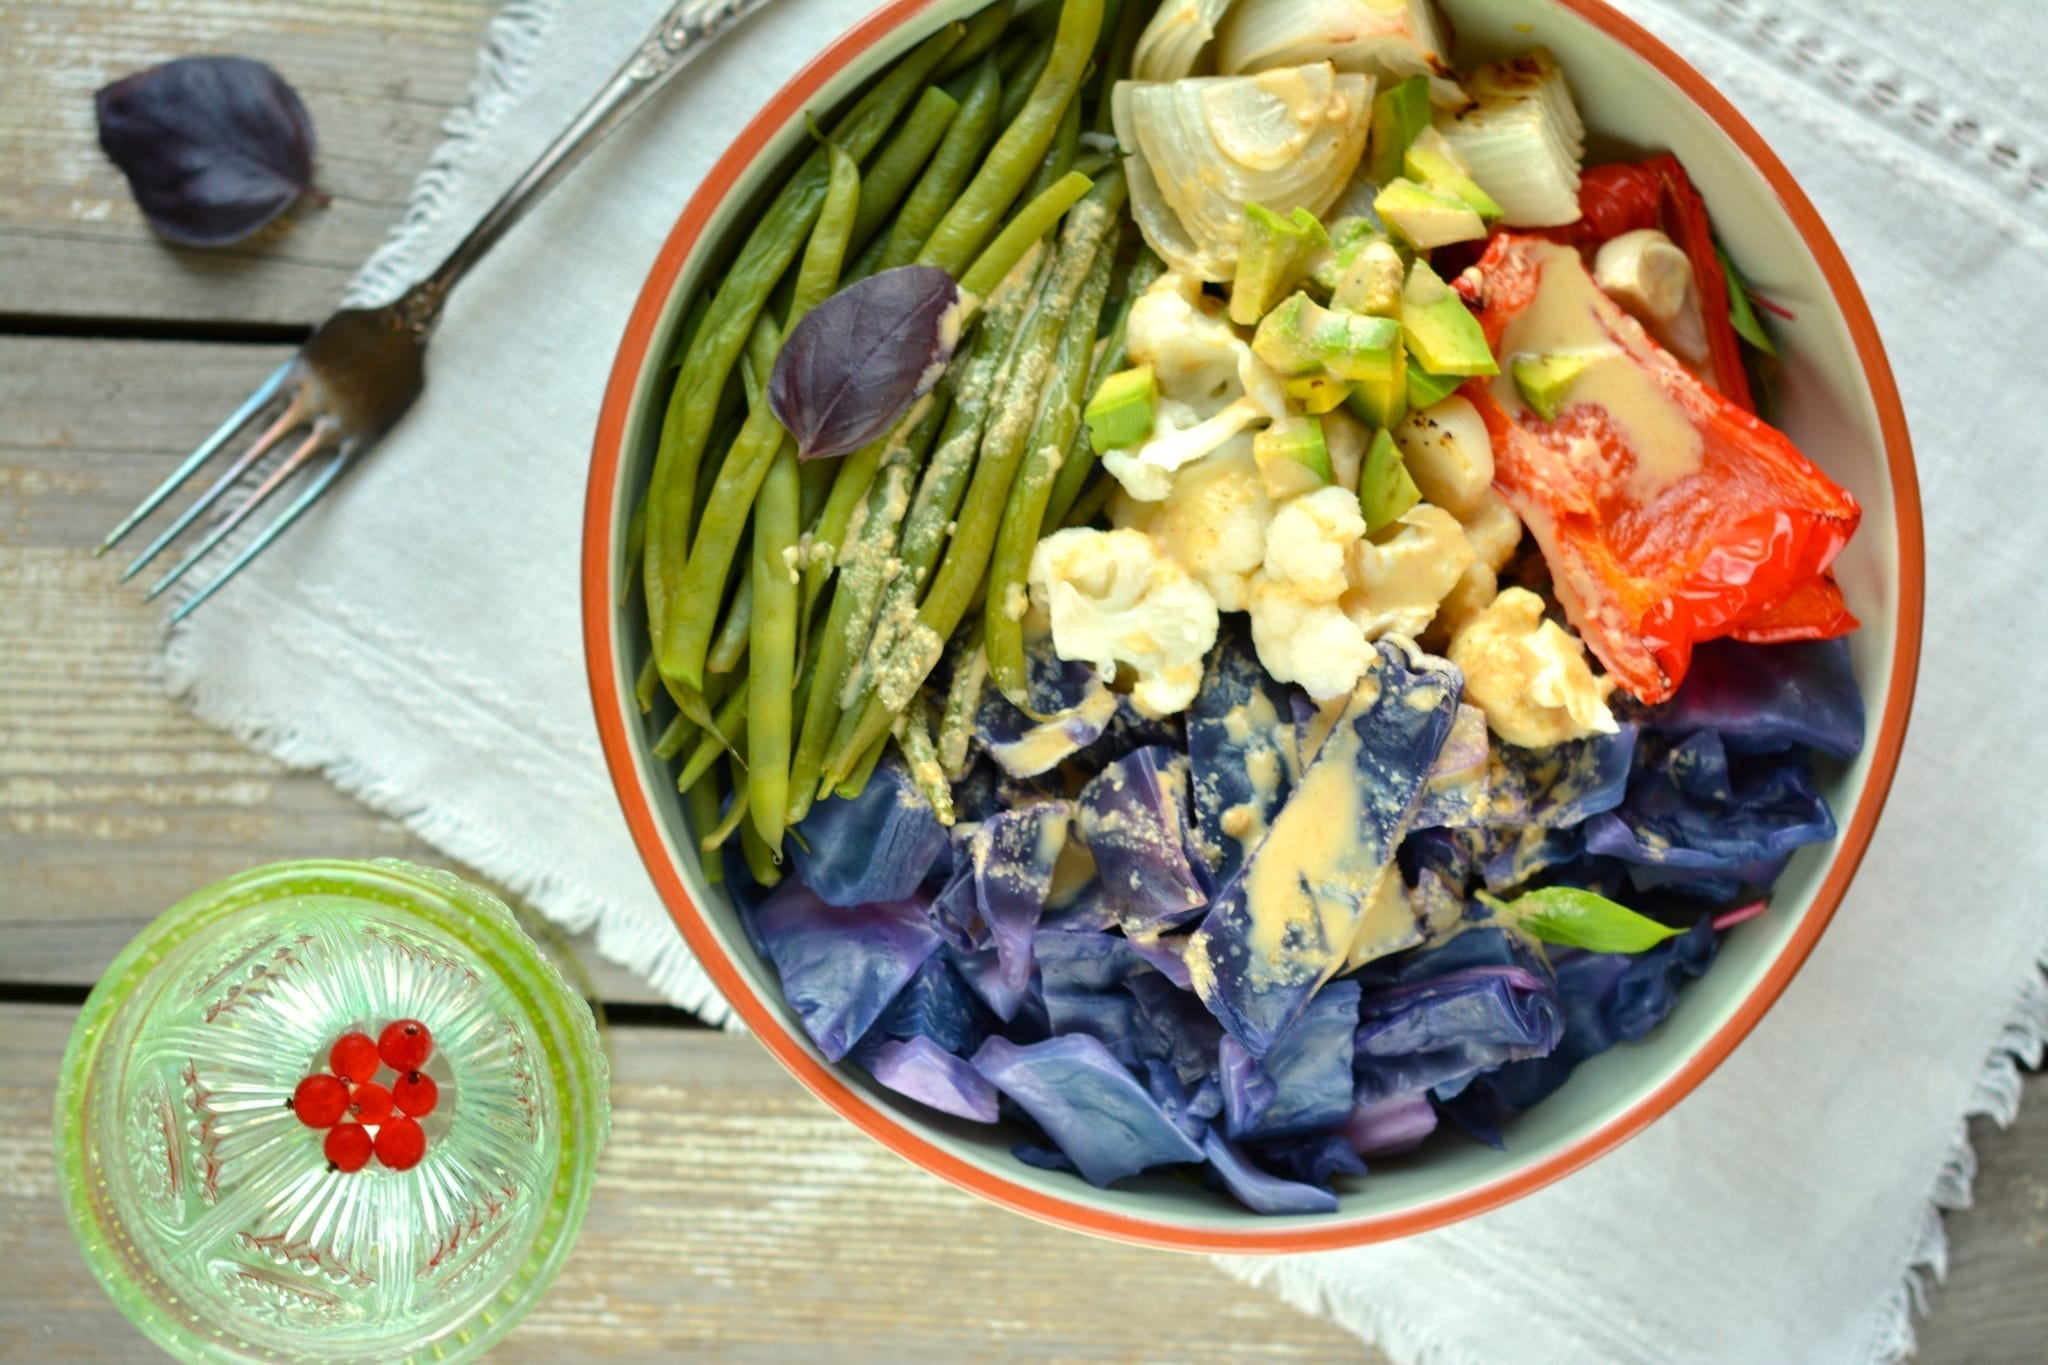 Vegan-Candida-Diet-Buddha-Bowl, vegan candida diet meal plans